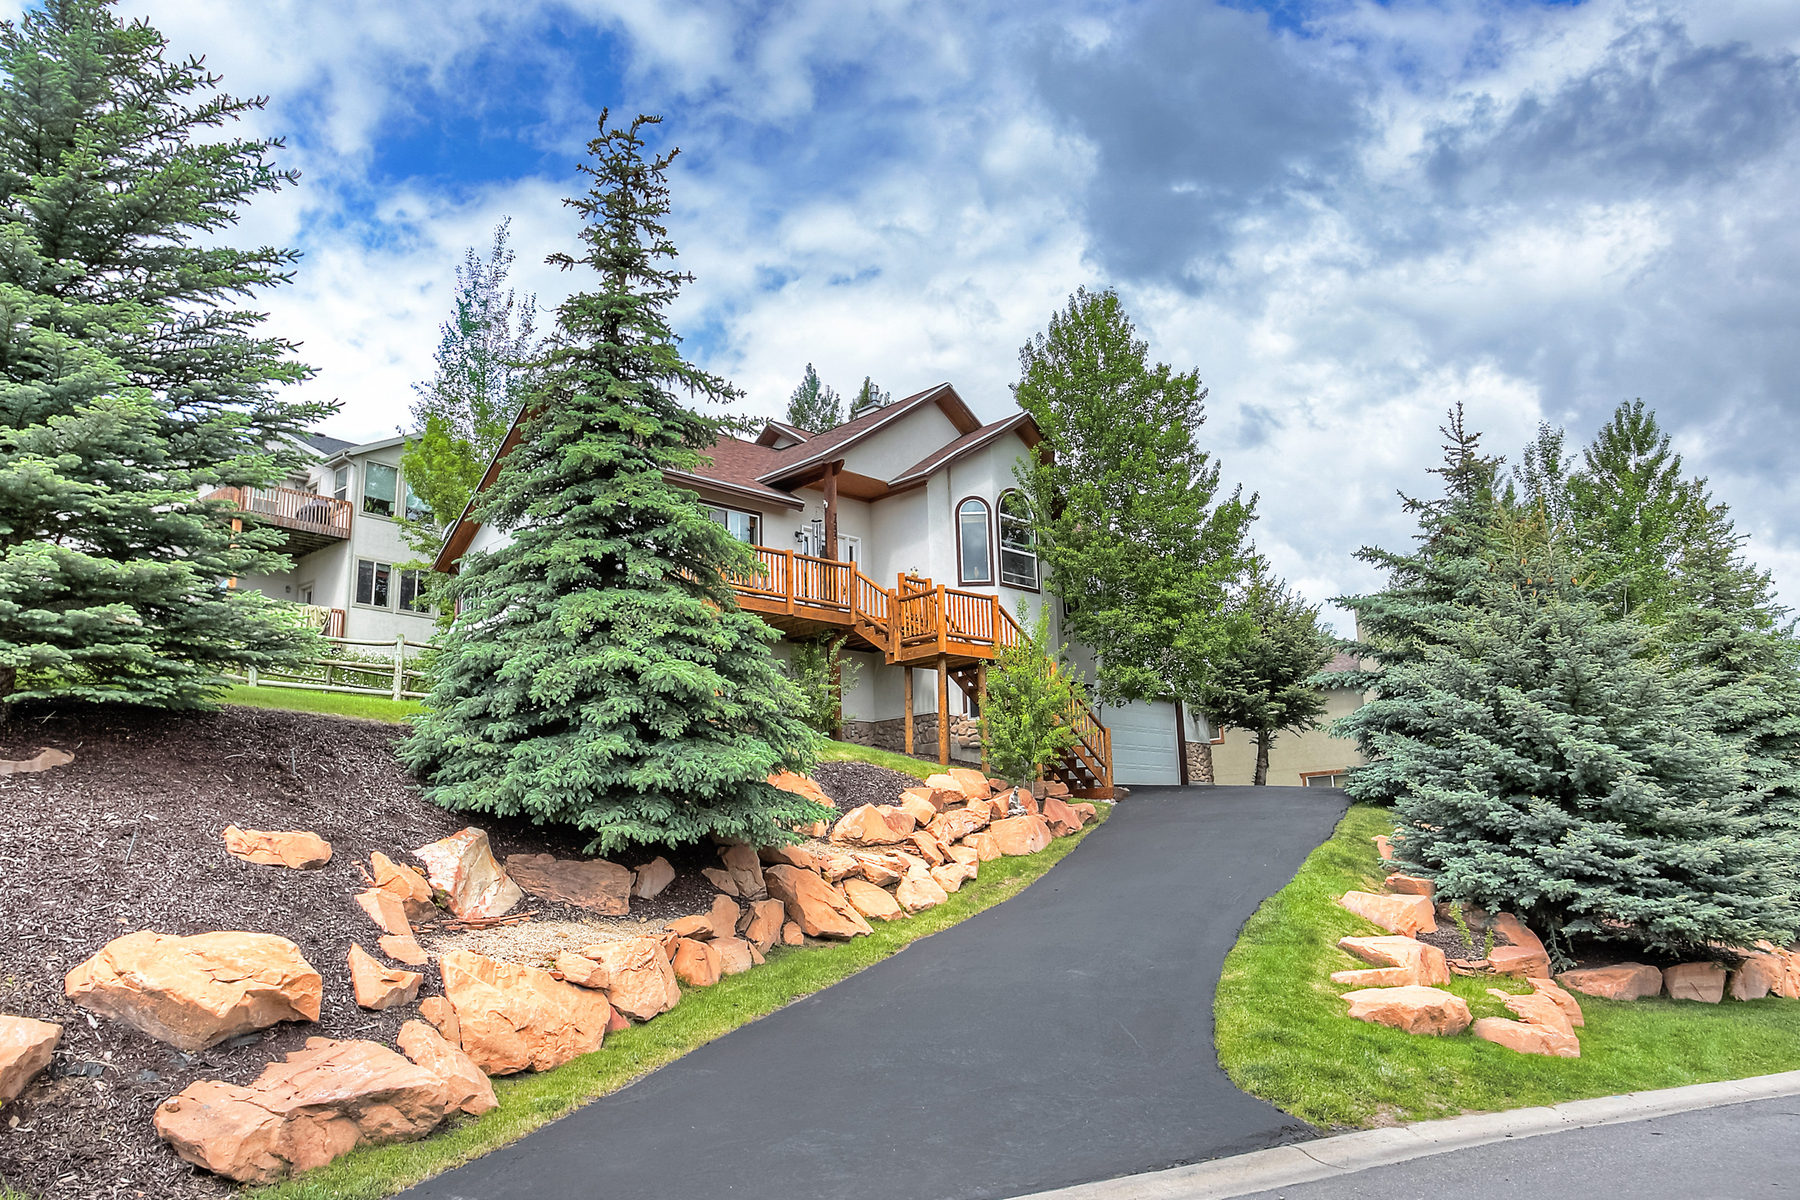 Single Family Home for Sale at Welcome Home 7555 Susans Cir Park City, Utah 84098 United States